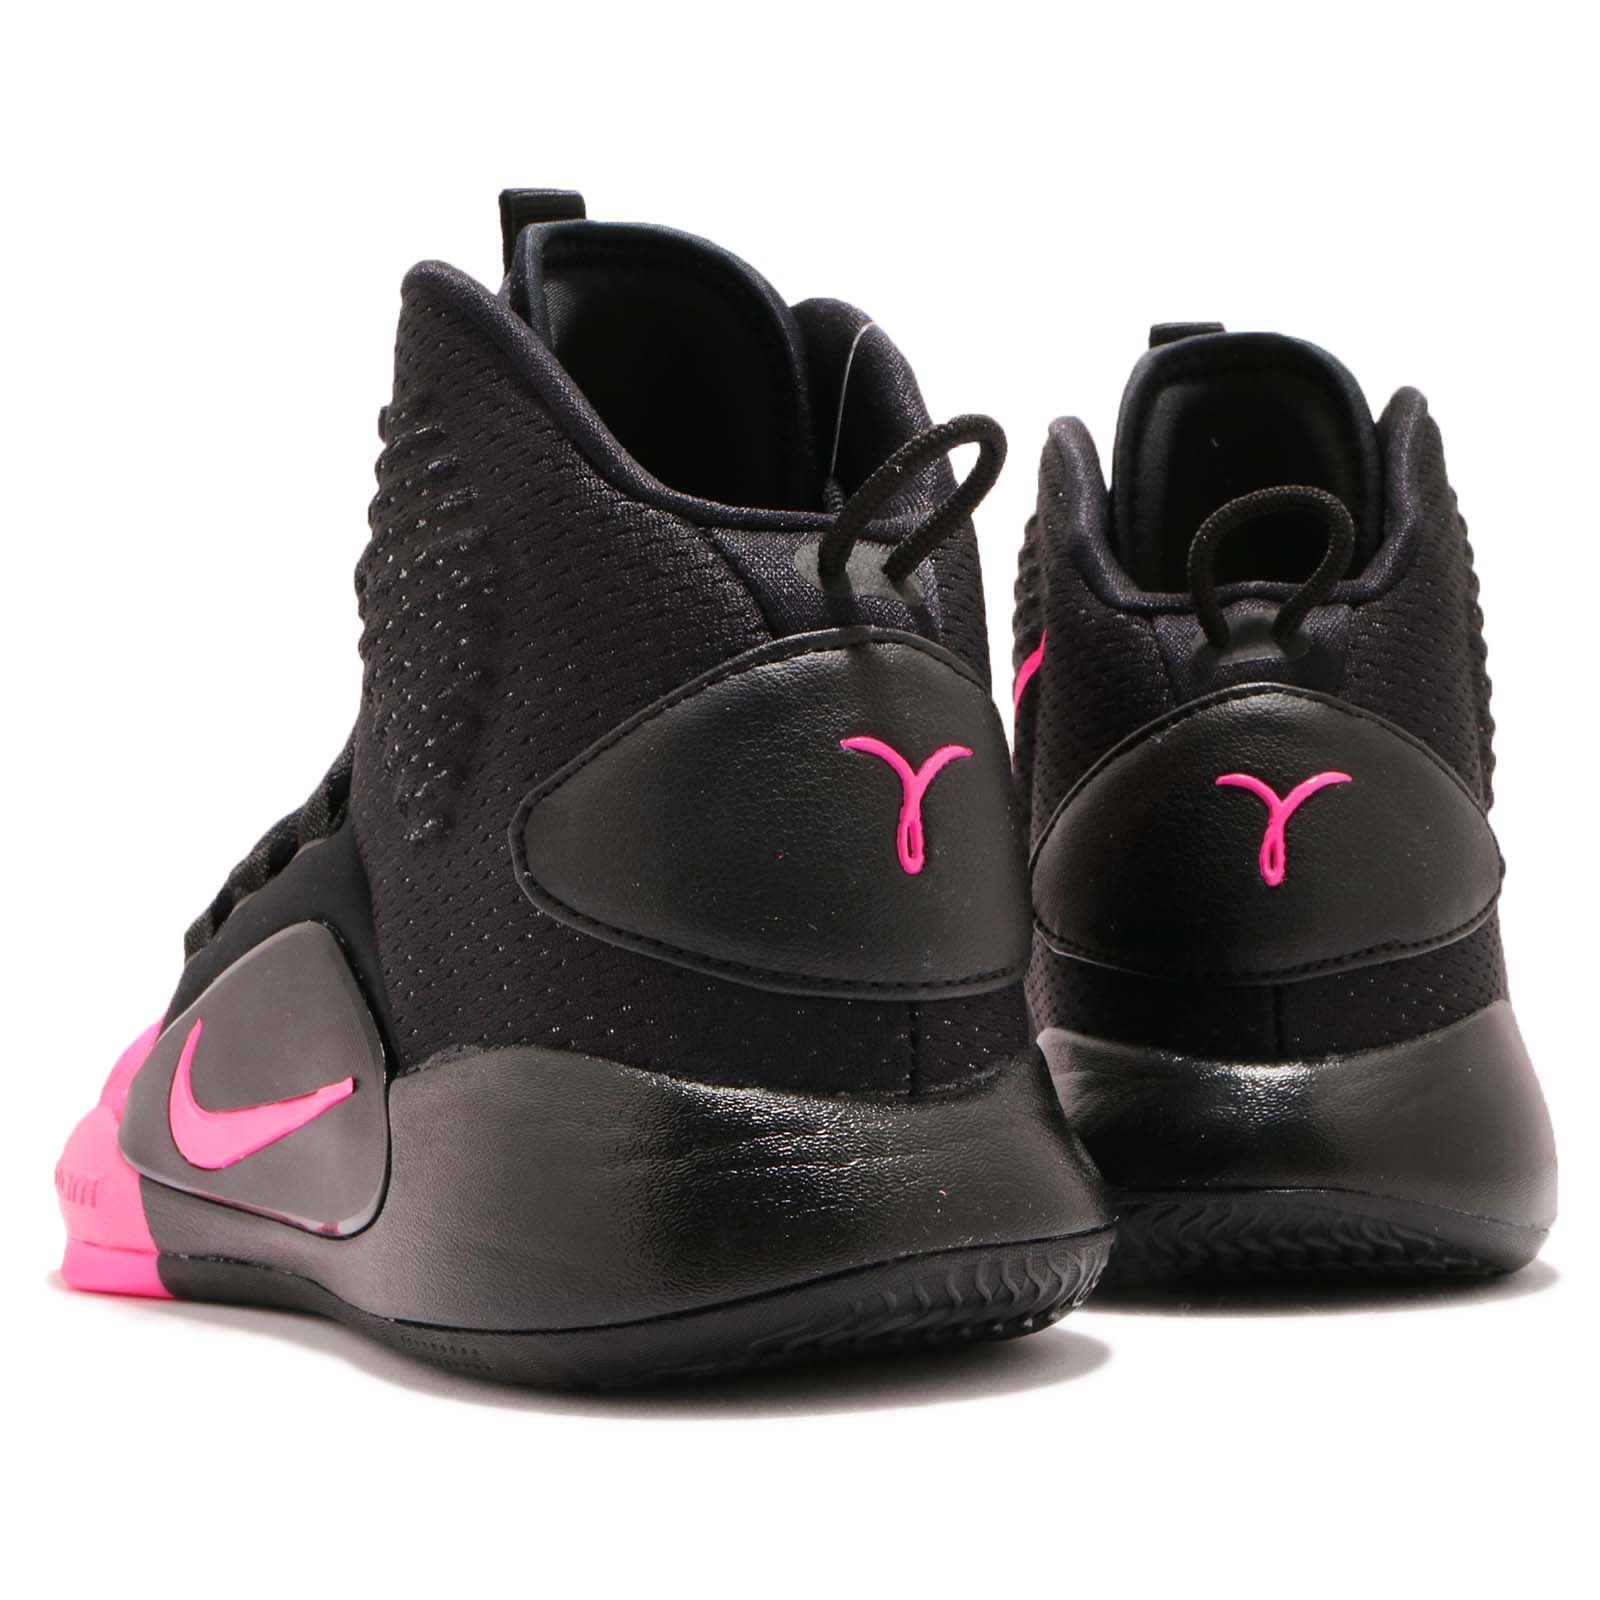 59994ac0426 Nike Hyperdunk X Kay Yow EP 10 Black Pink Men Basketball Shoe ...